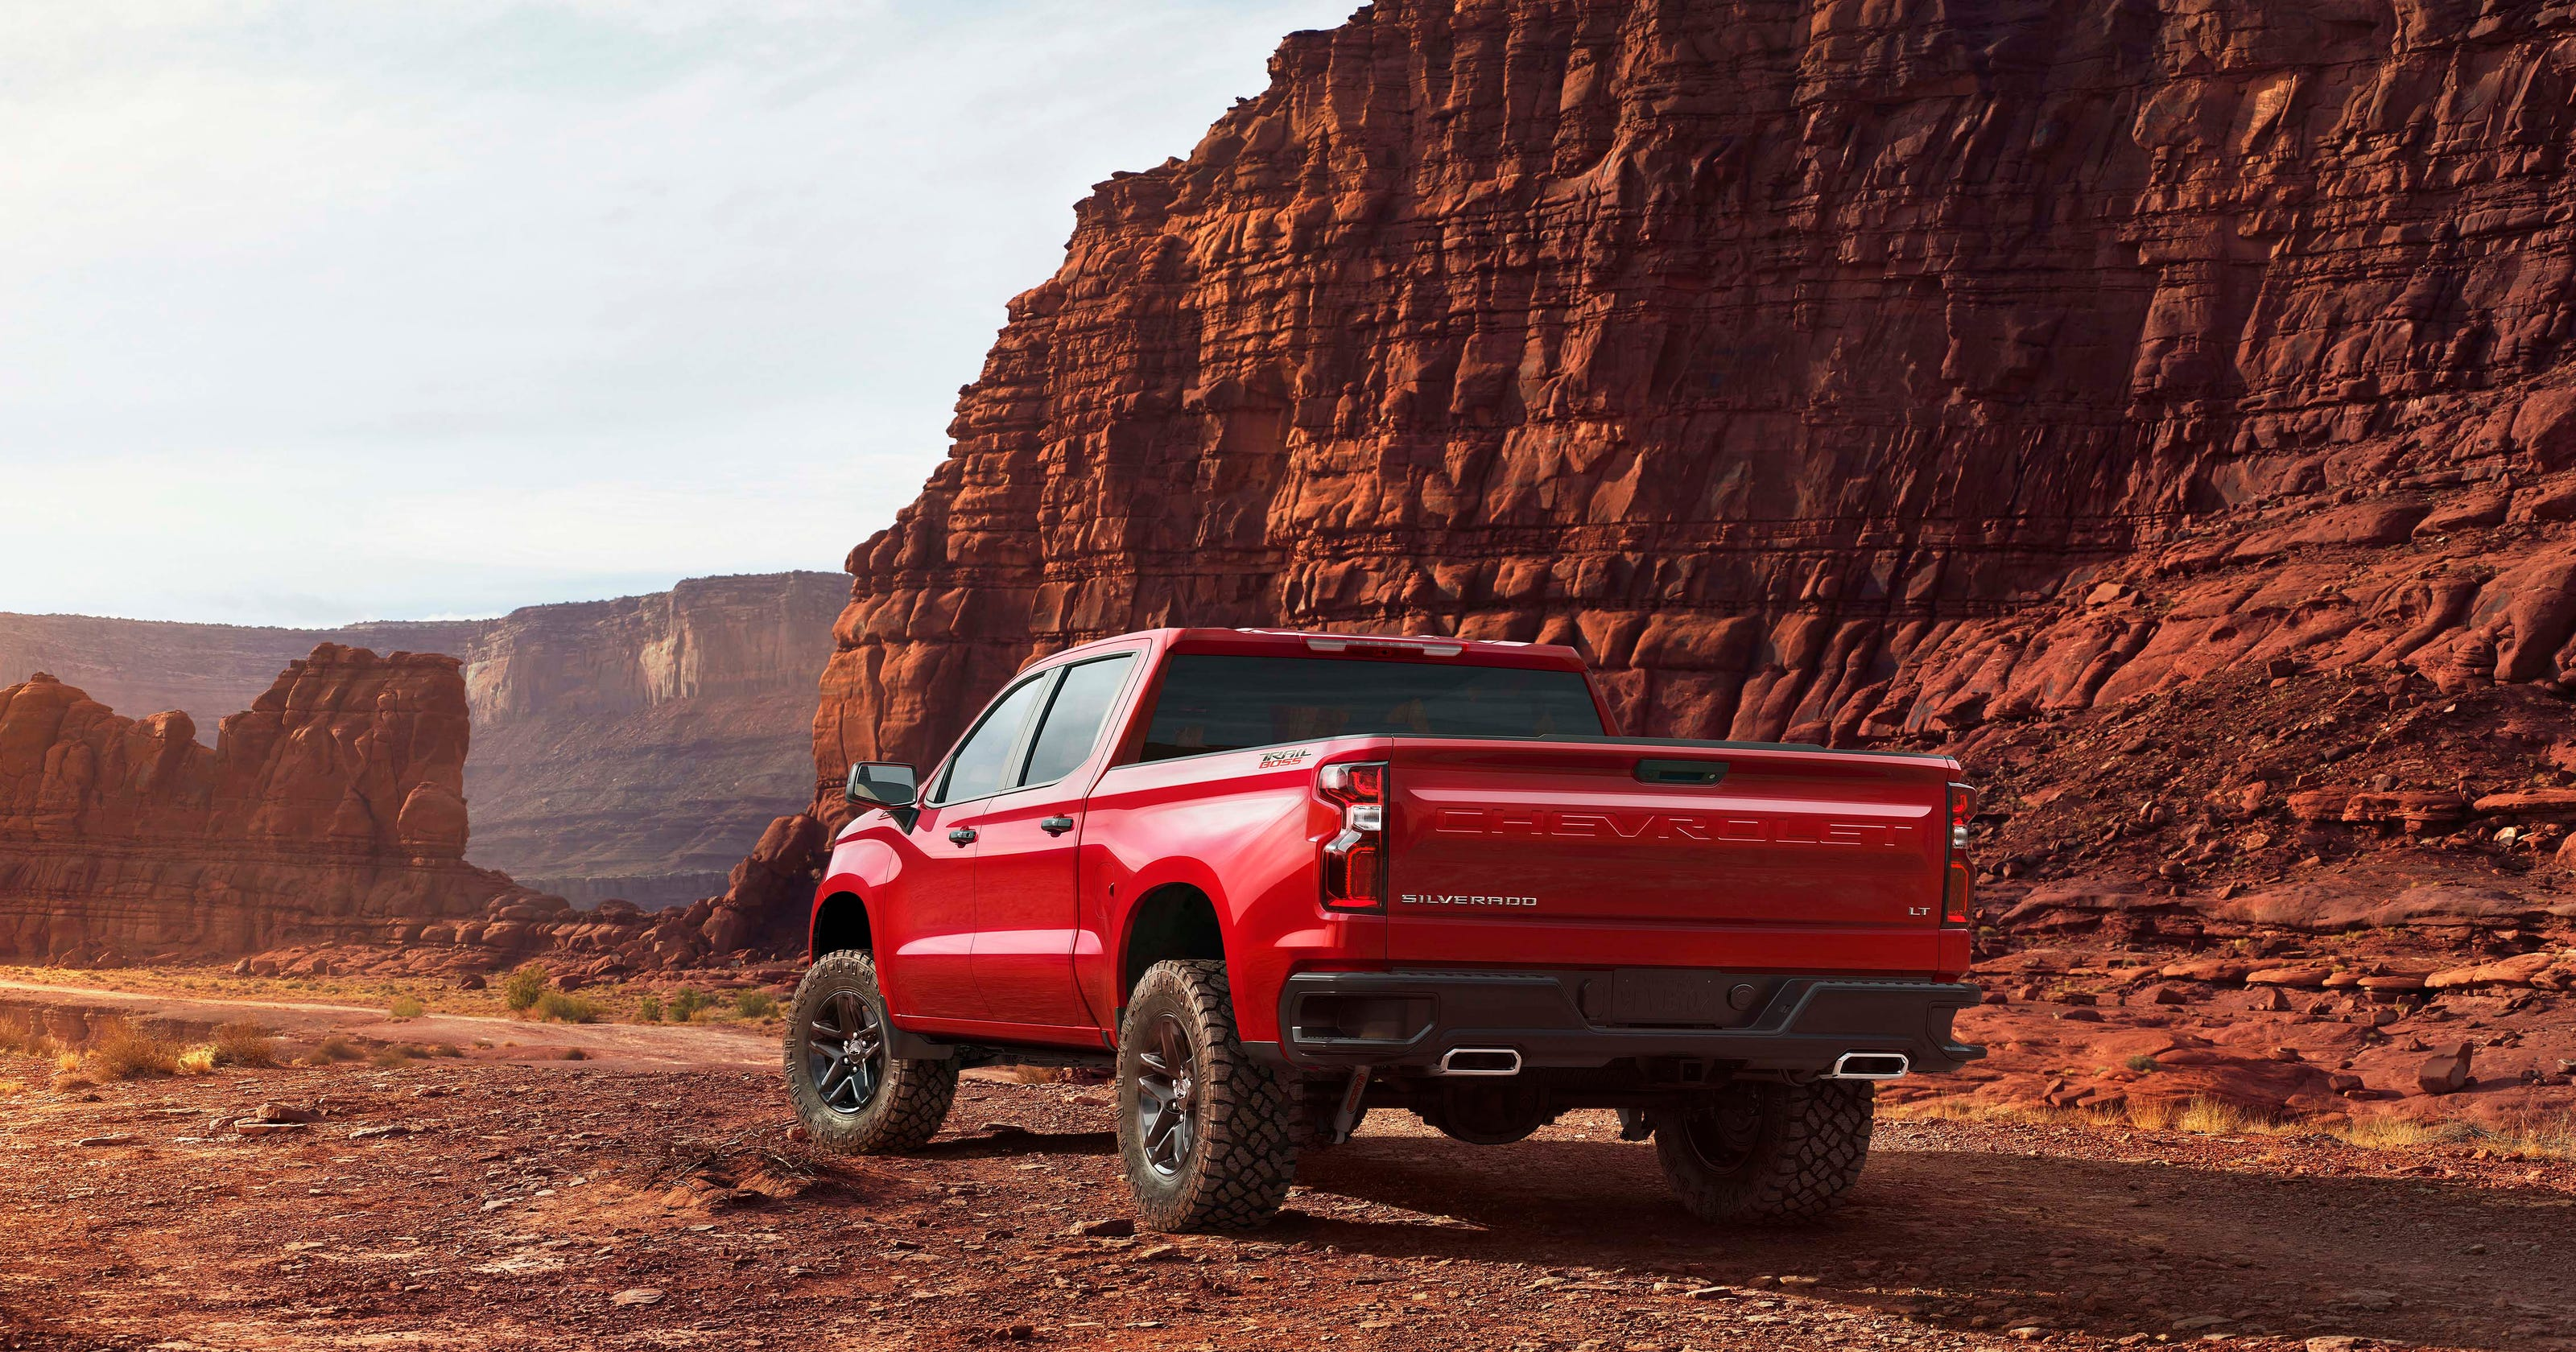 Sneak peek: All-new Chevy Silverado pickup